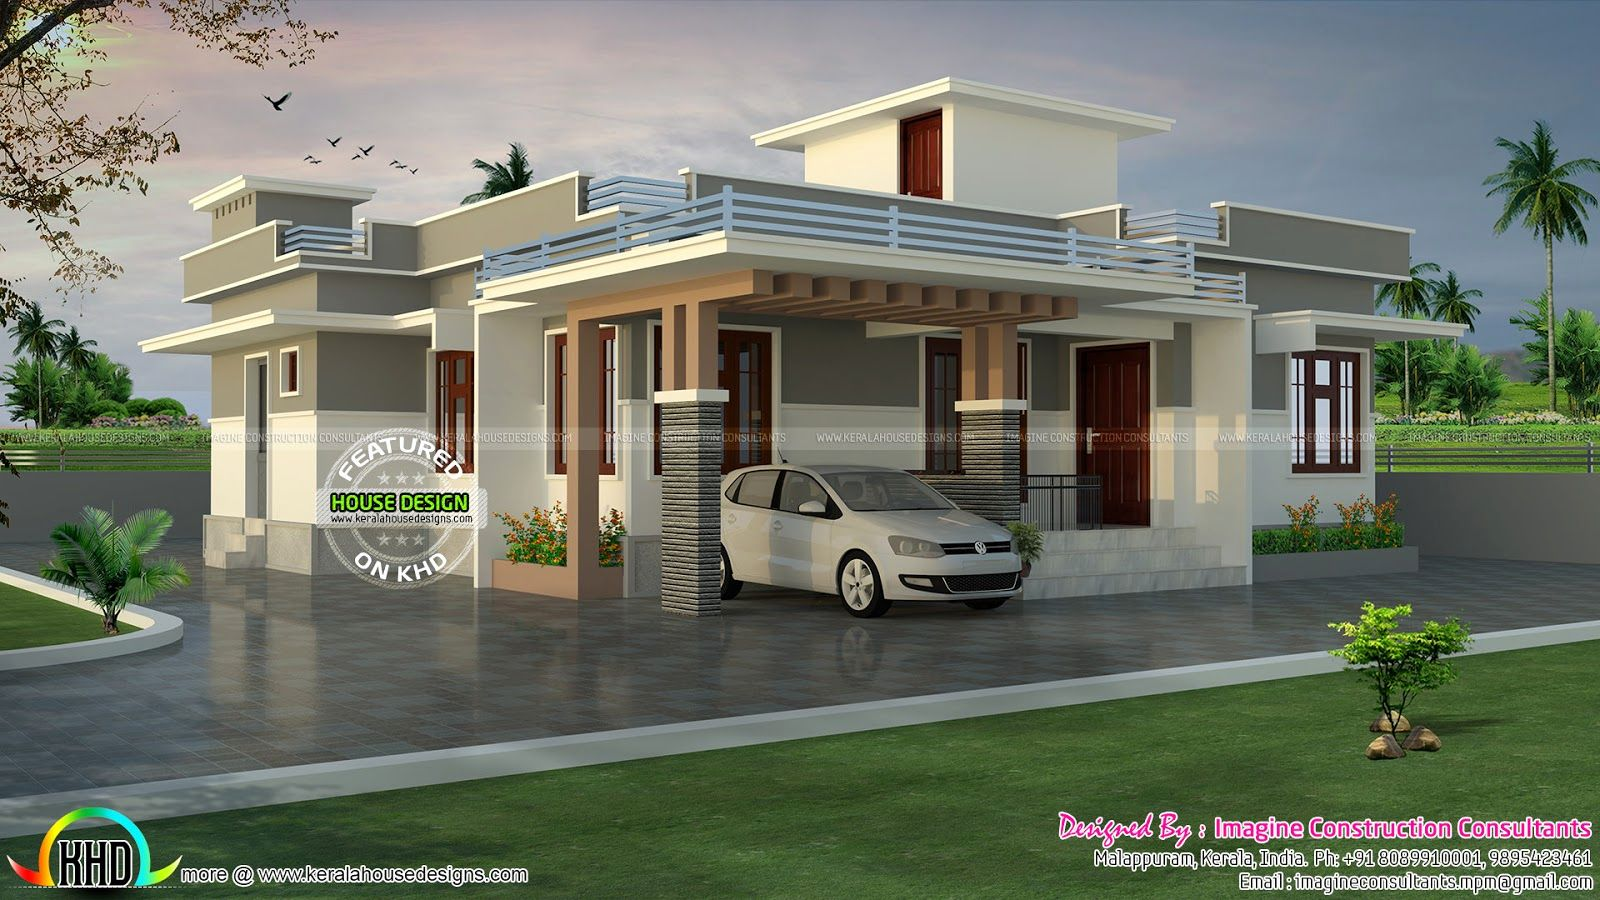 Residential House Plans In Kerala Elegant 1200 Sq House Plan Feet Bedroom Kerala Single Flo House Architecture Design Kerala House Design Bungalow House Design